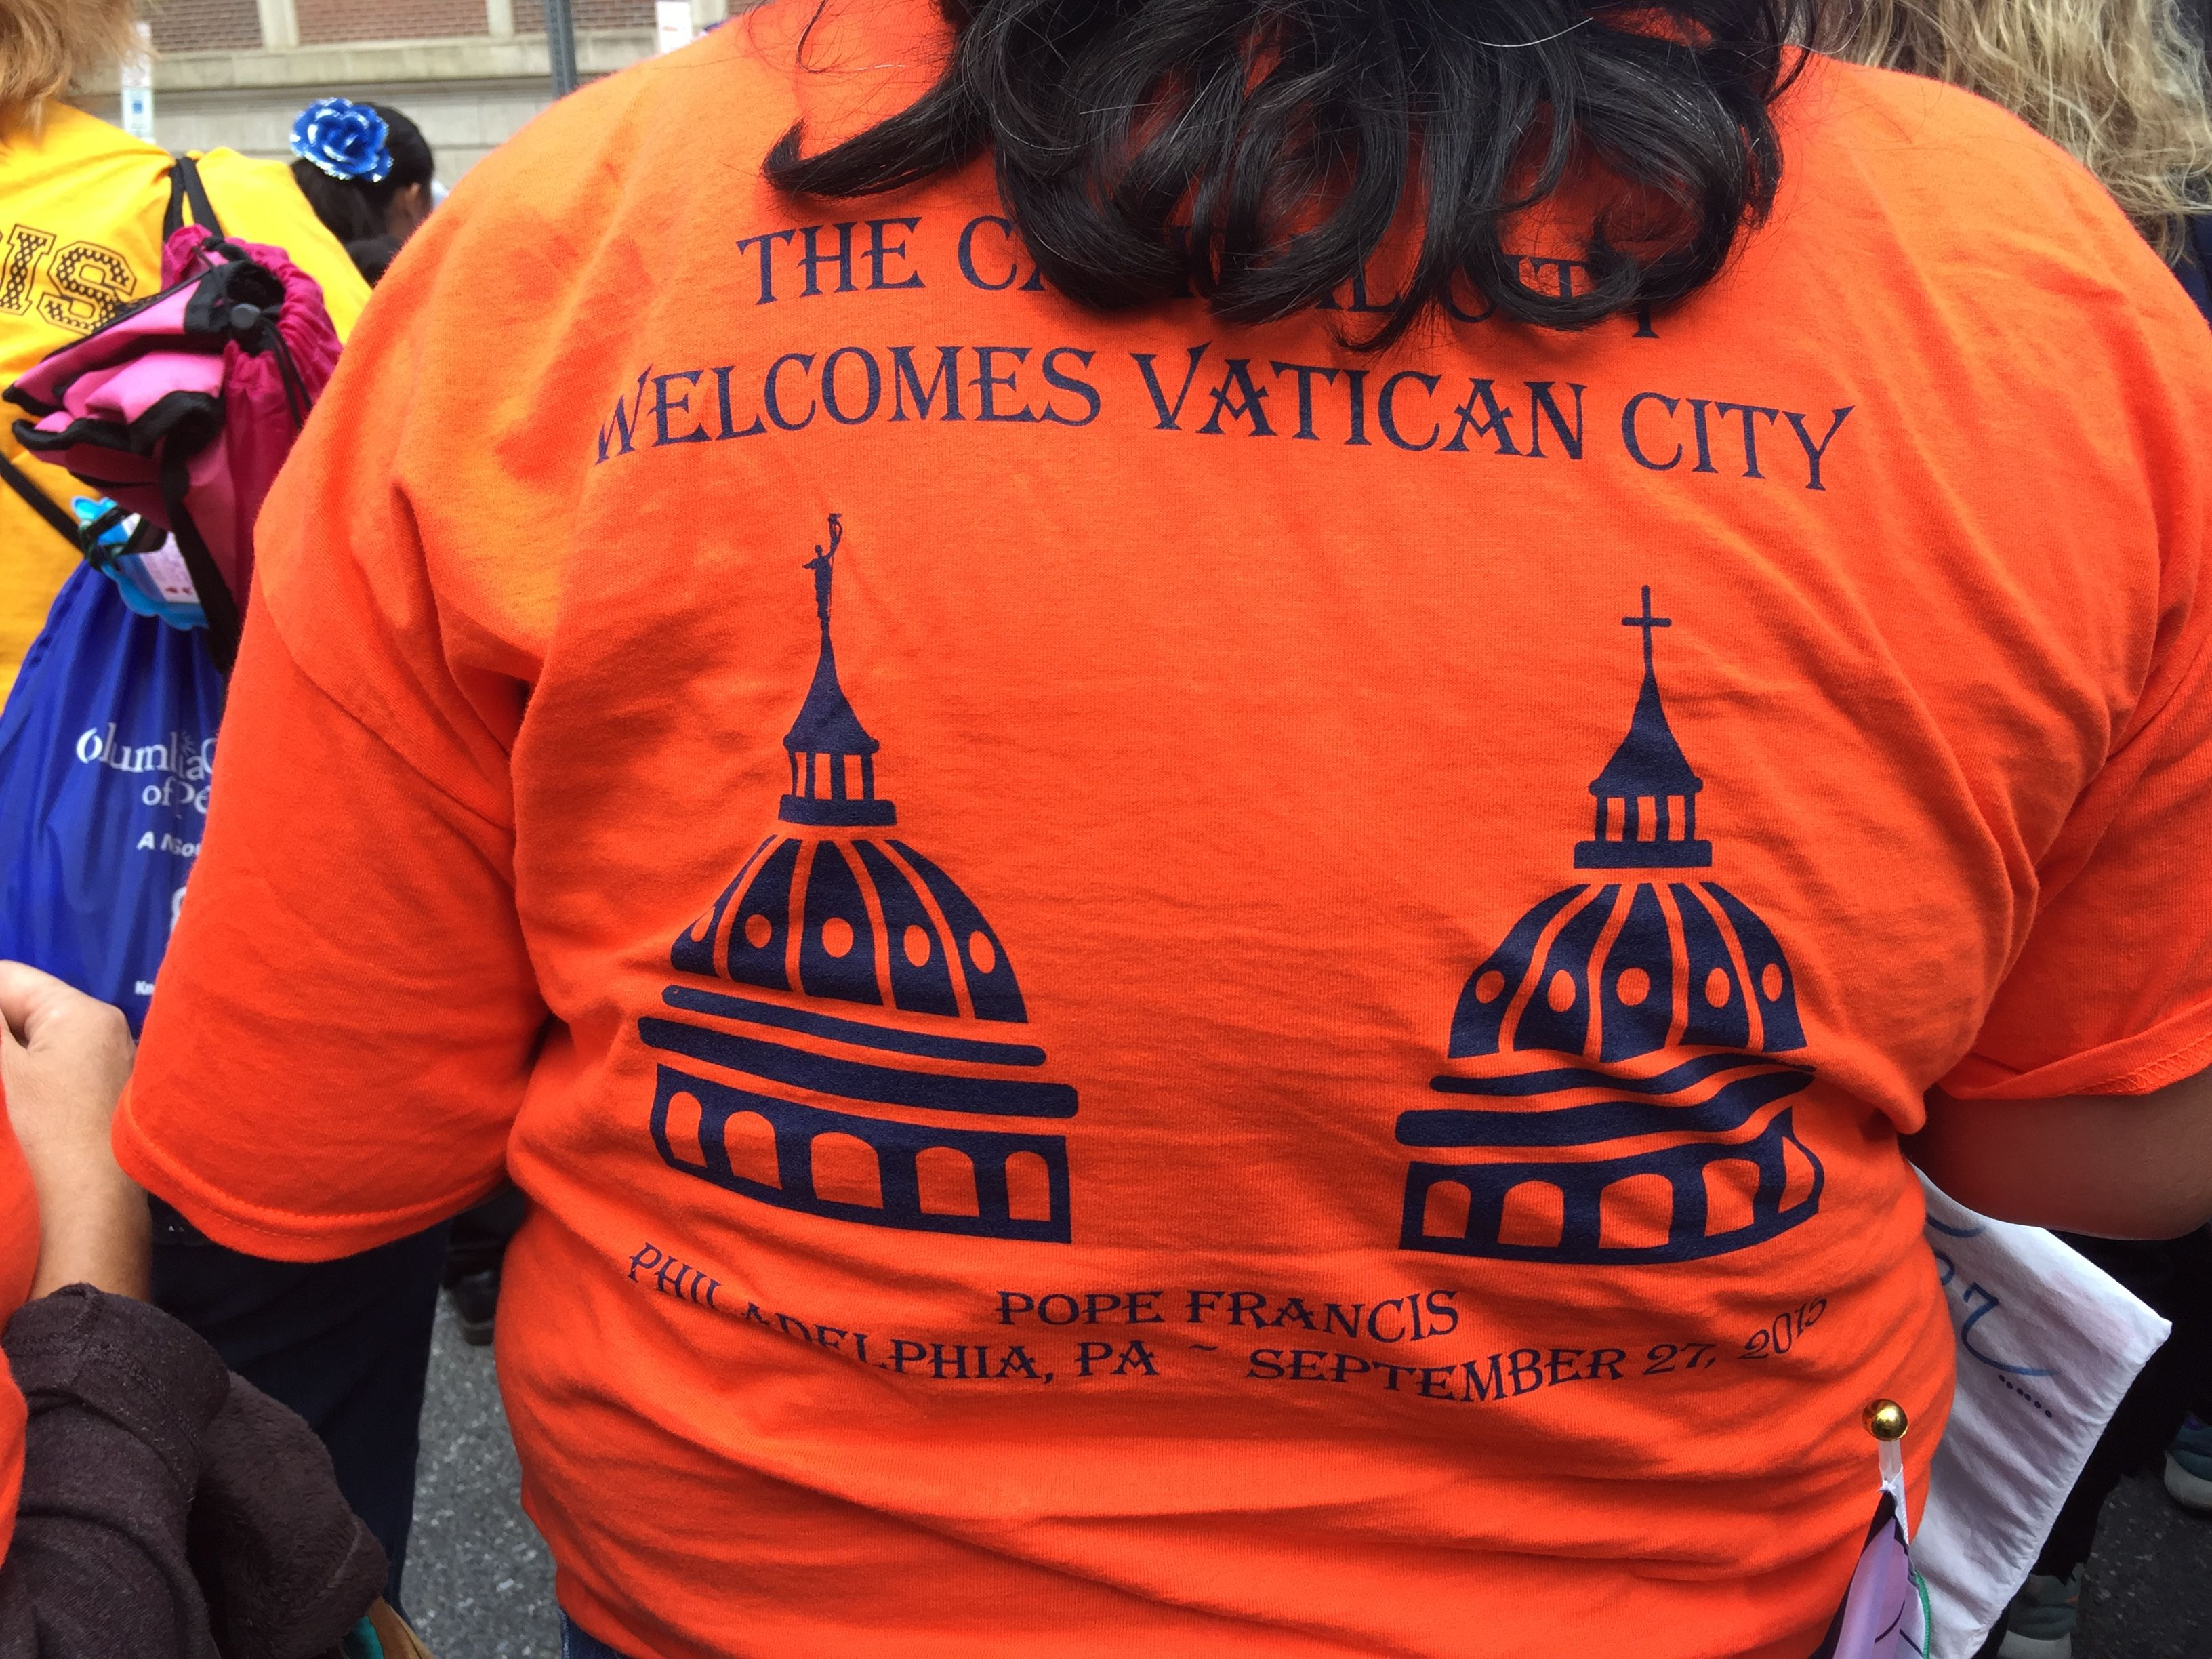 T-shirt from the Archdiocese of Harrisburg that welcomes the Vatican to the Capitol City.